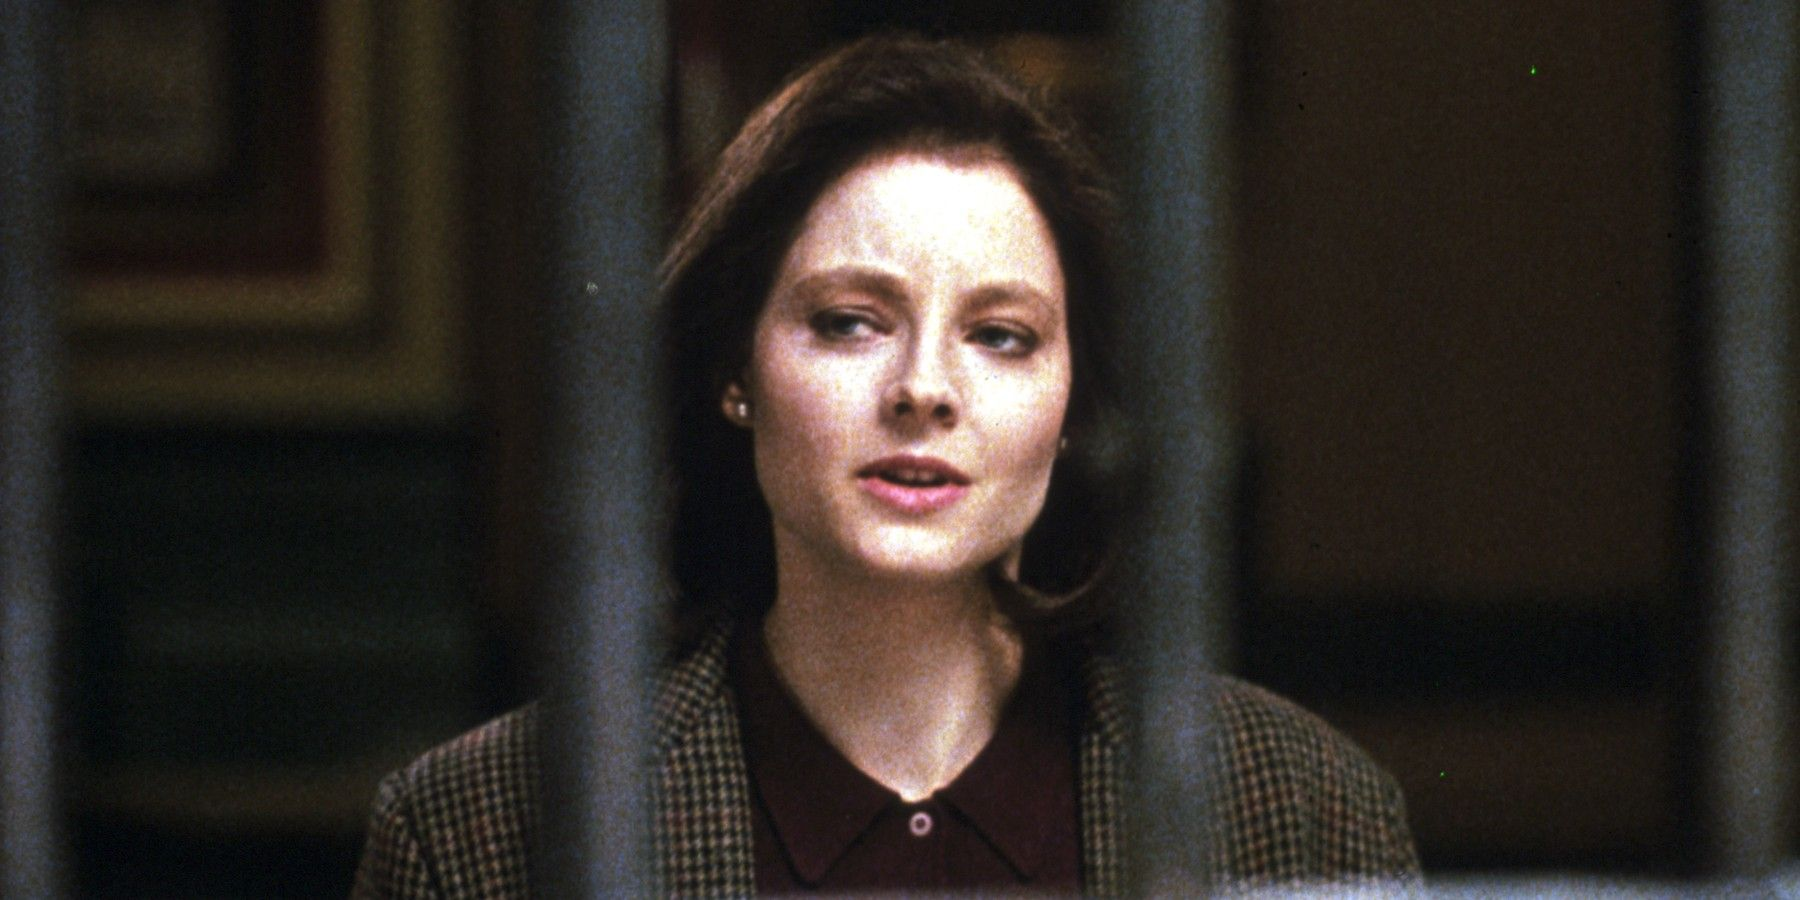 Why Jodie Foster Won't Play Silence of the Lambs' Clarice Again